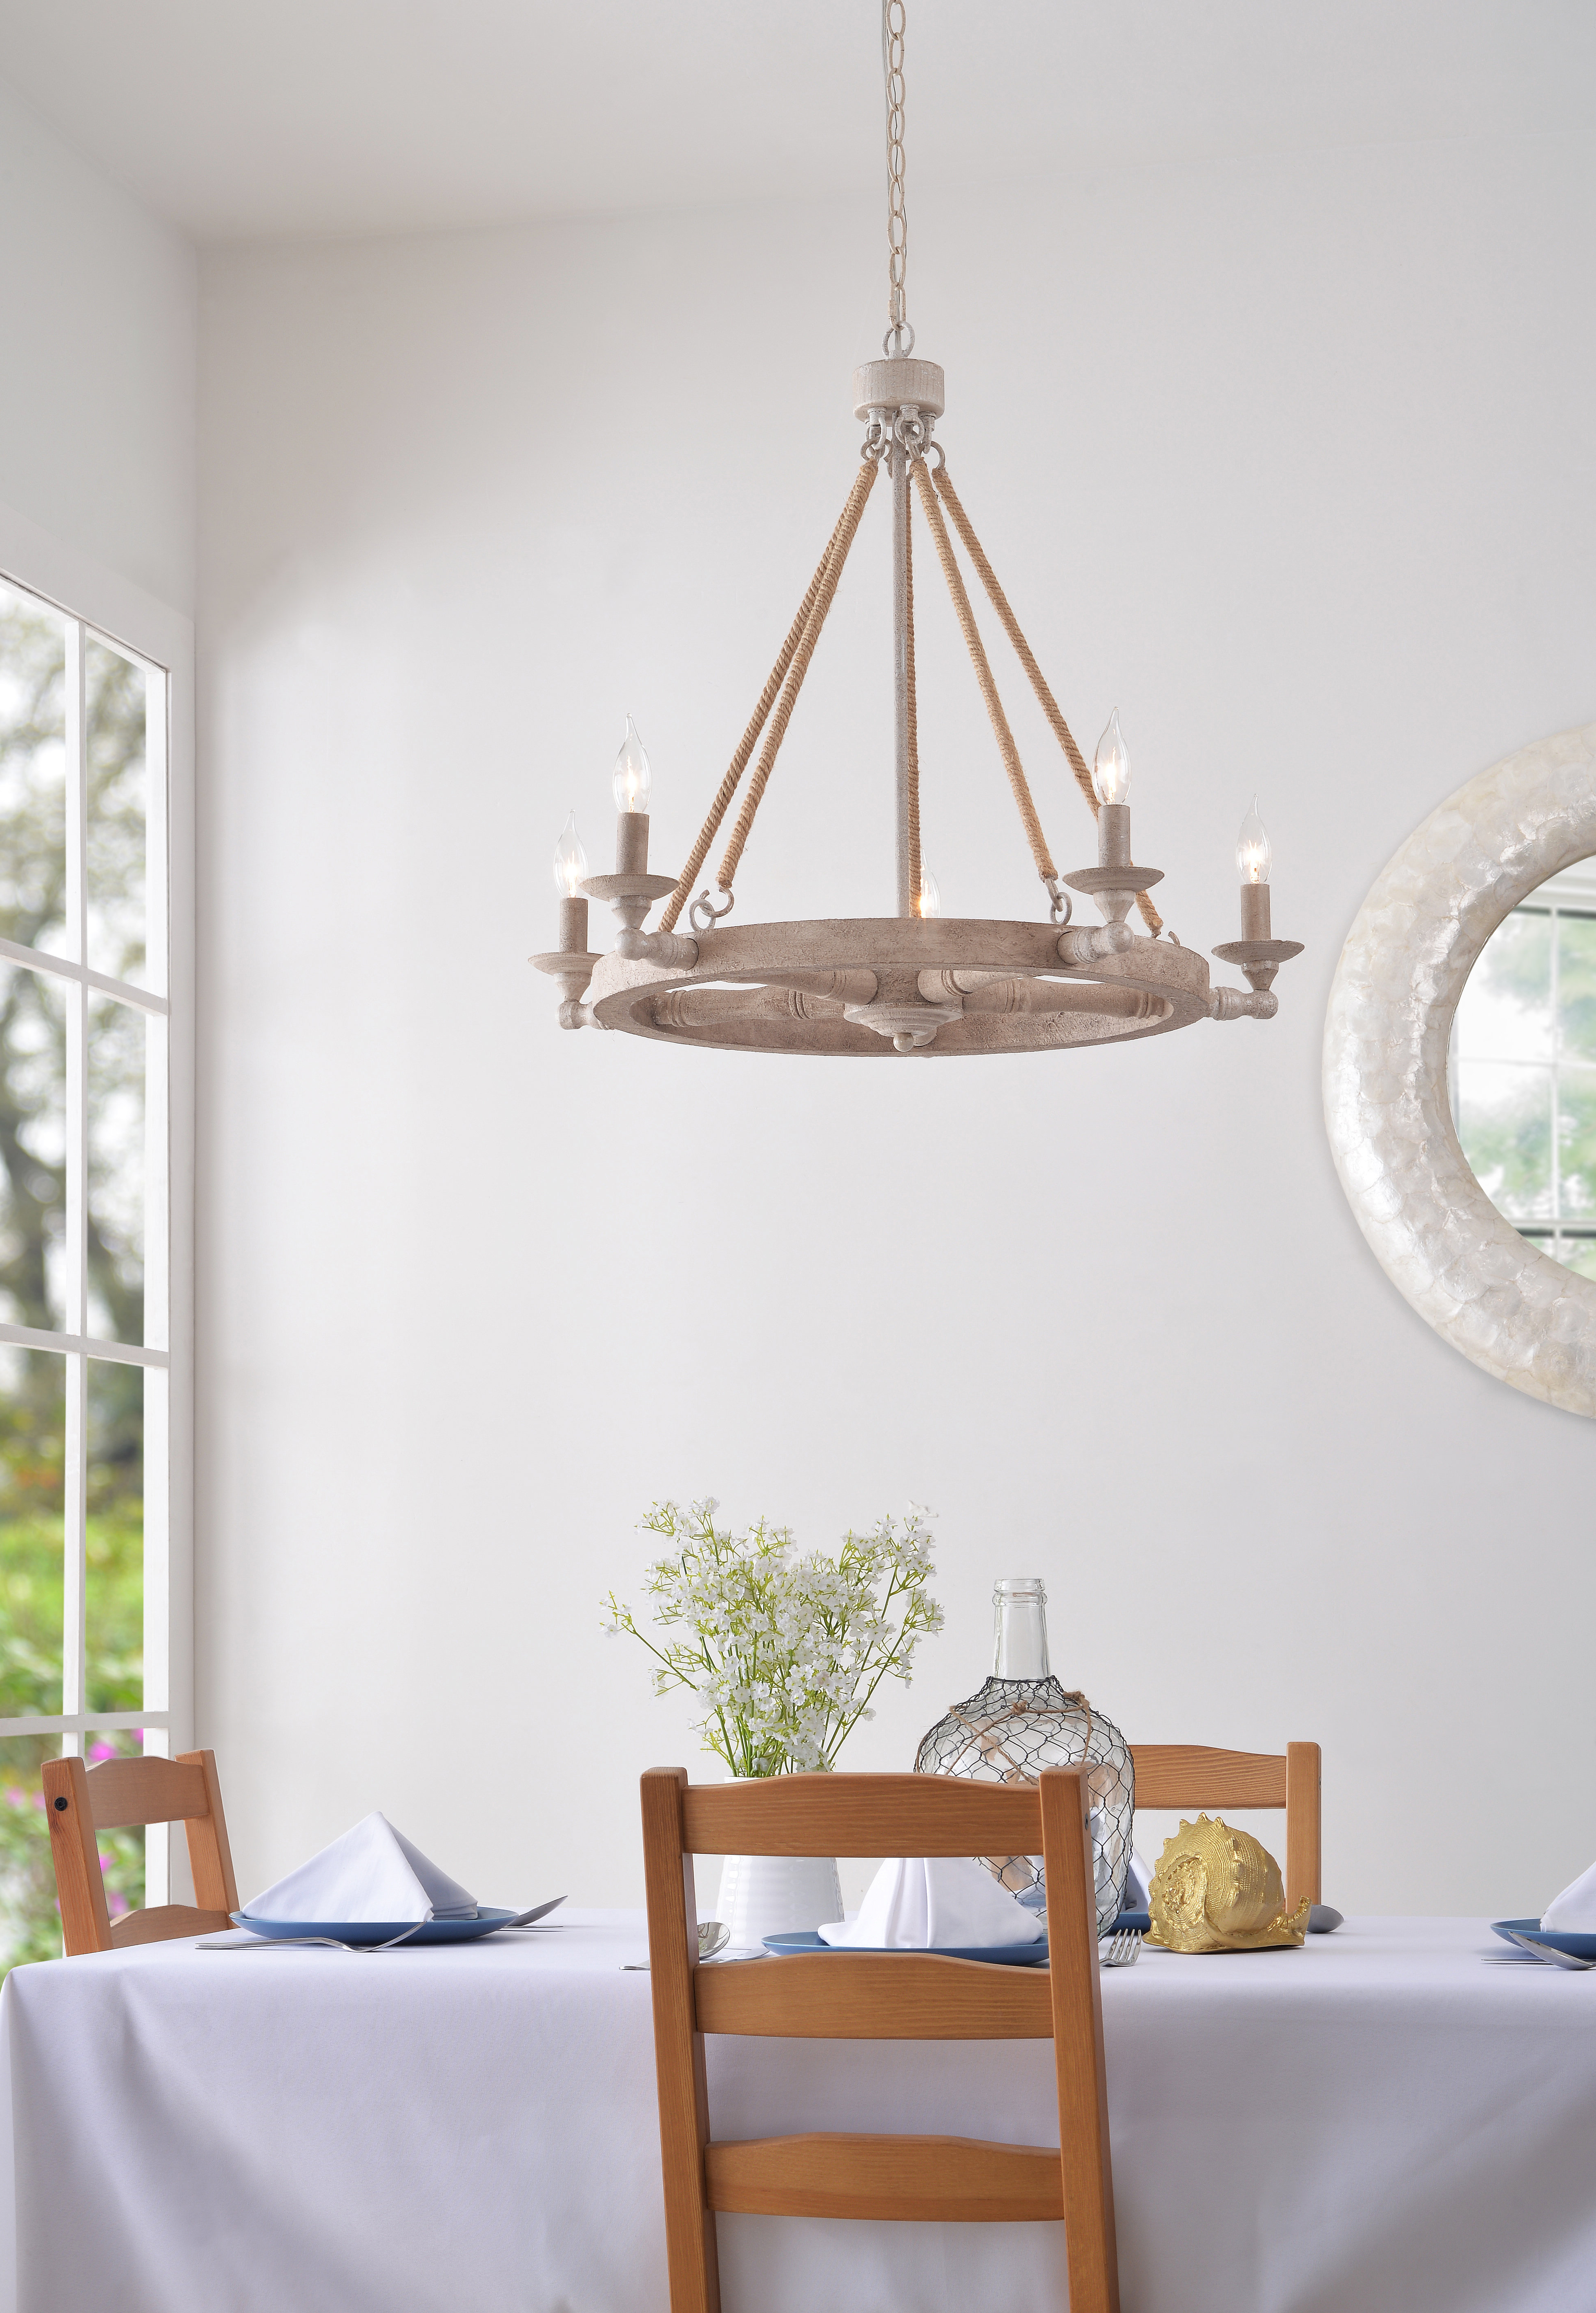 Best And Newest Kalyn 5 Light Wagon Wheel Chandelier Within Janette 5 Light Wagon Wheel Chandeliers (Gallery 12 of 20)